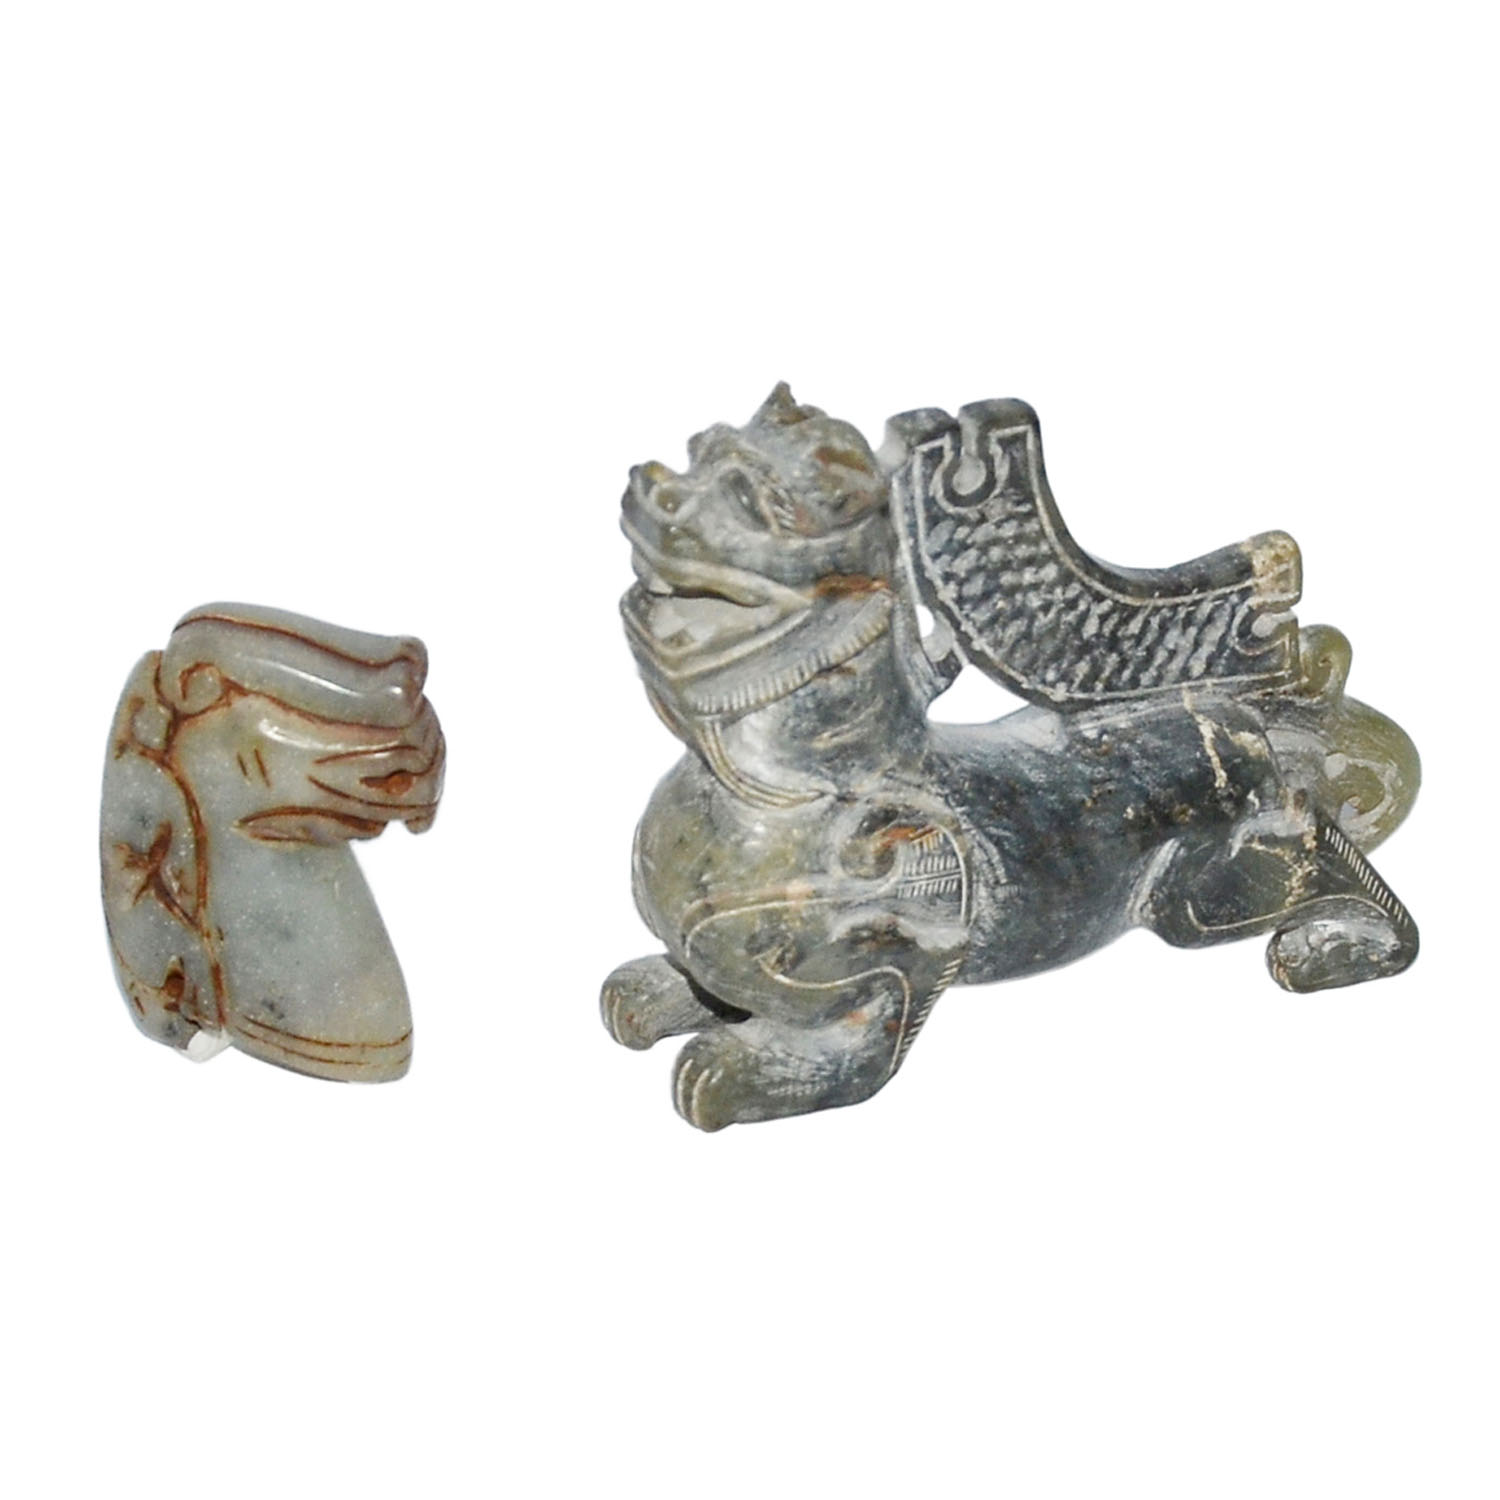 Lot 23 - 玉雕龍頭獸身、馬頭伏獸一組二件 Two Carved Dark Jade Mythical Beasts Ornaments  Height: 3¾ in (9.5 cm), 2½ in (6.4